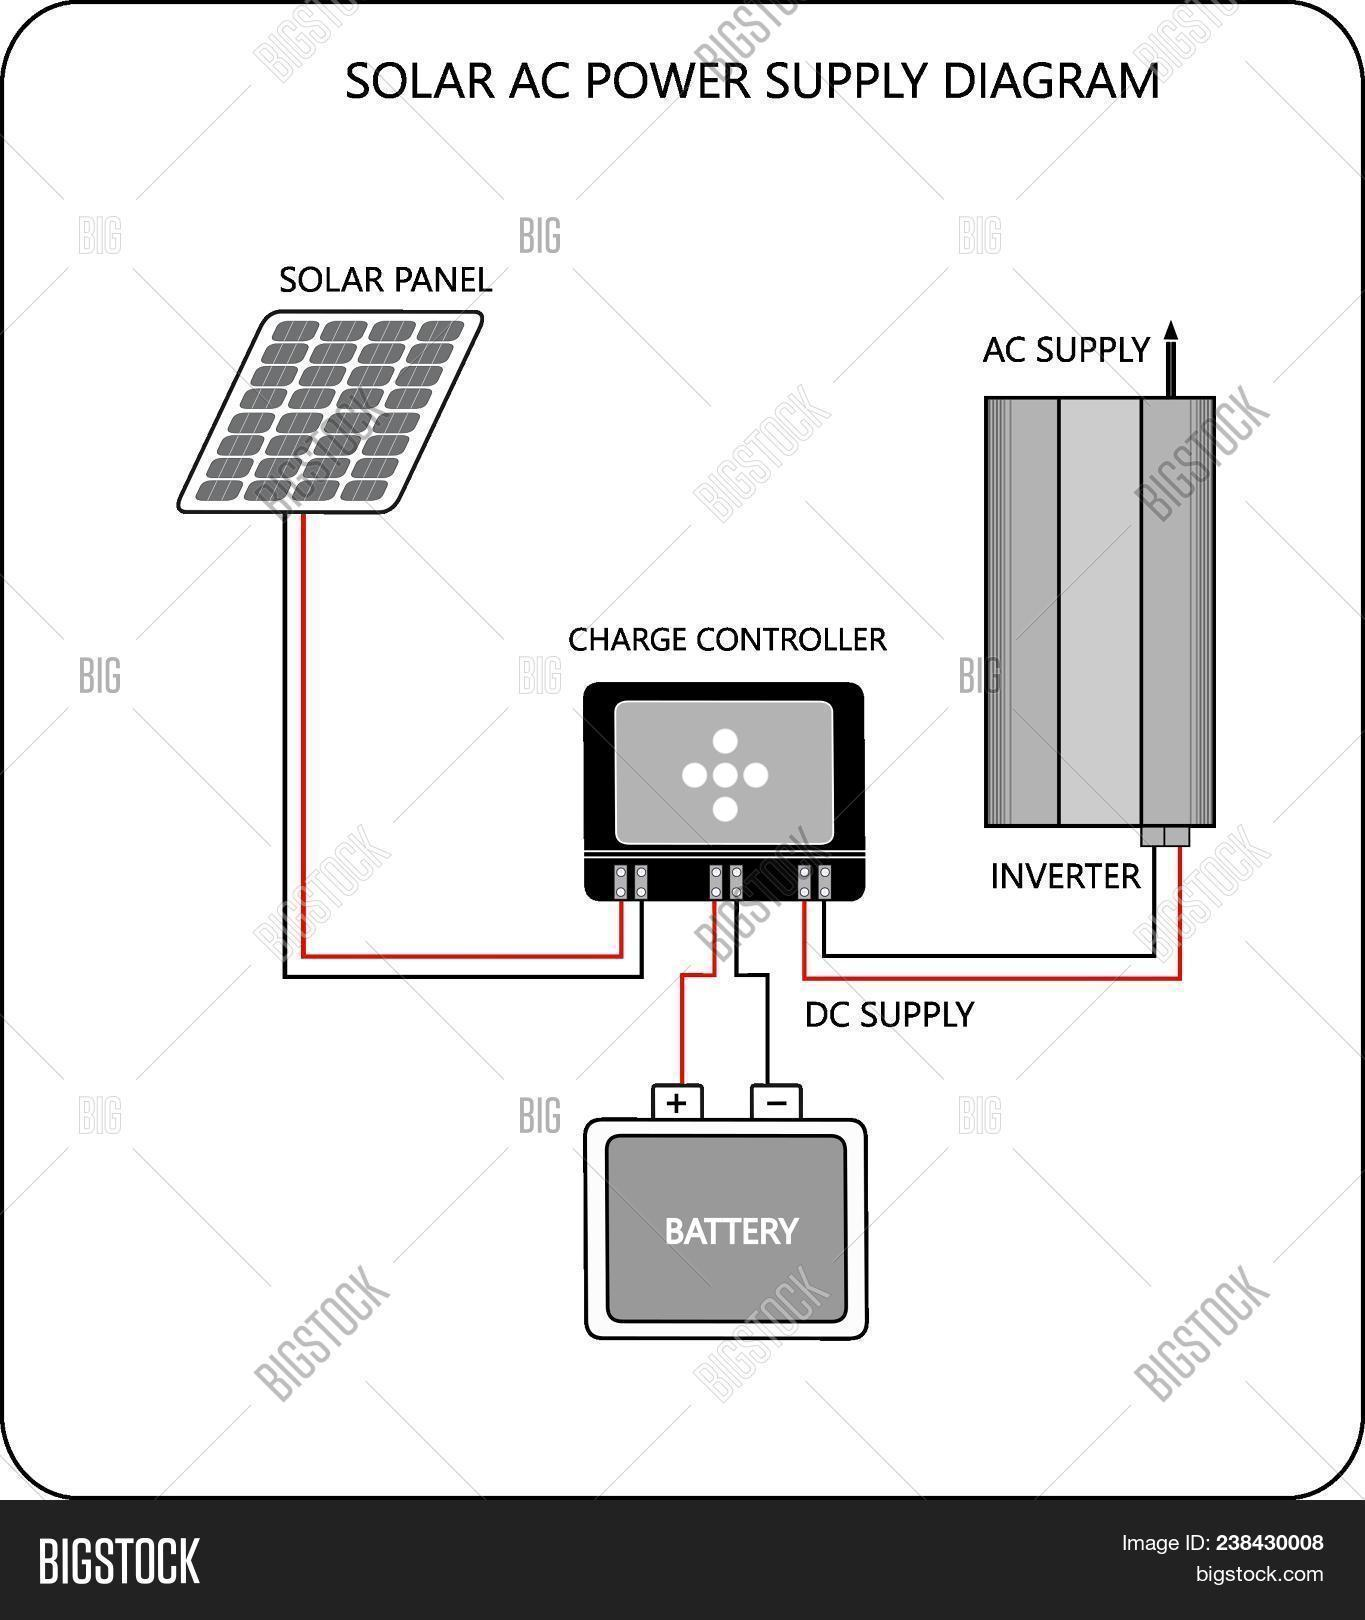 Solar Ac Power System Image Photo Free Trial Bigstock Panel Diagram With Battery Charge Controller And Inverter